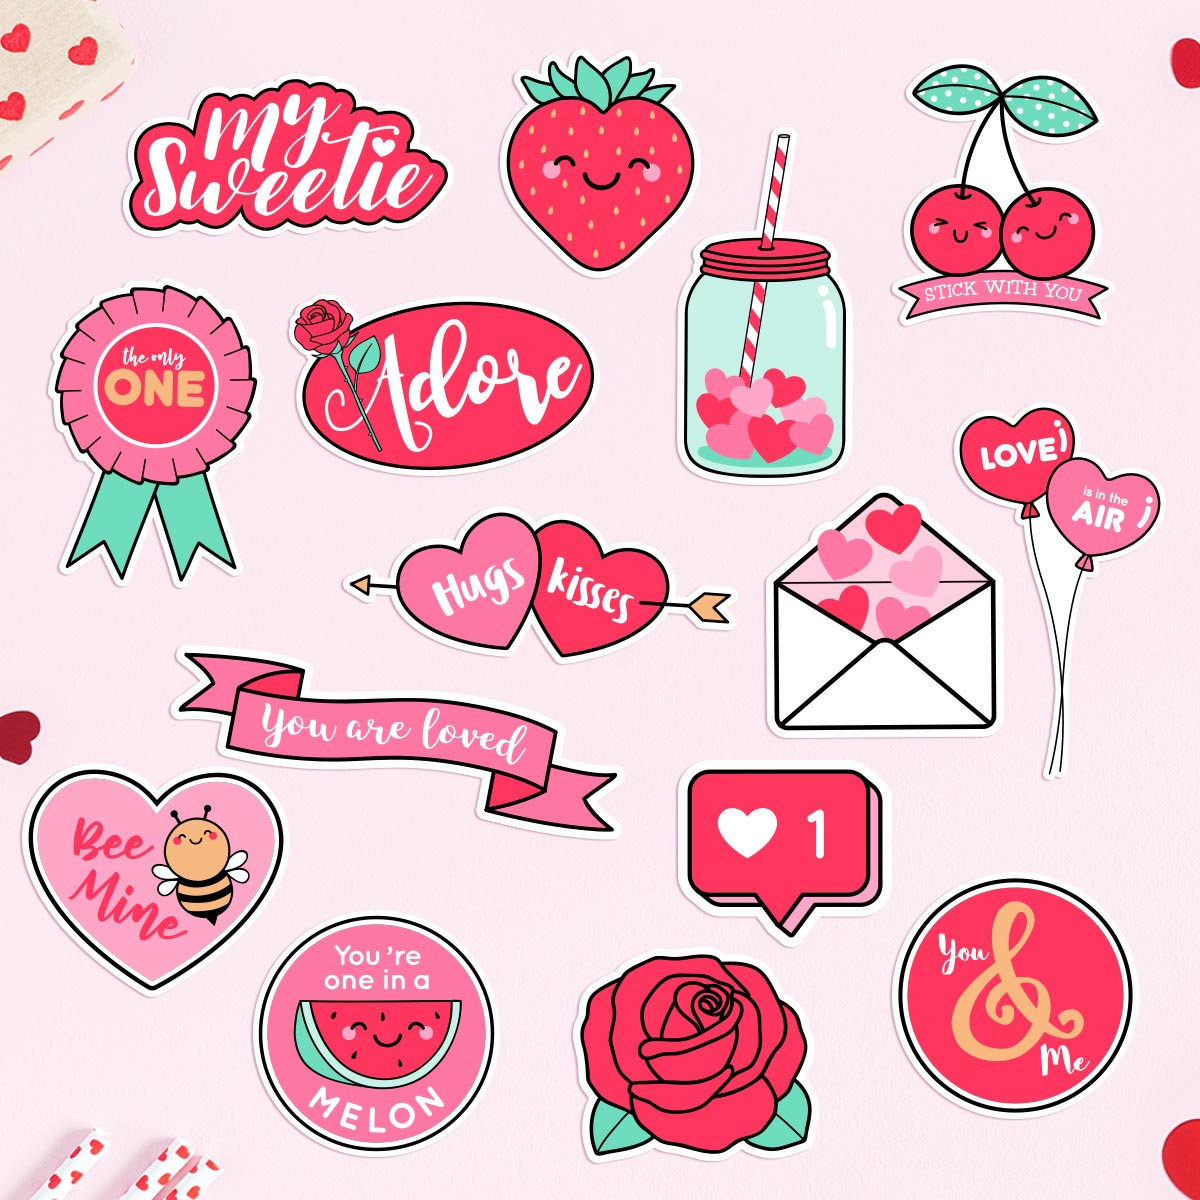 Sweet On You - Valentine's Day Sticker Pack